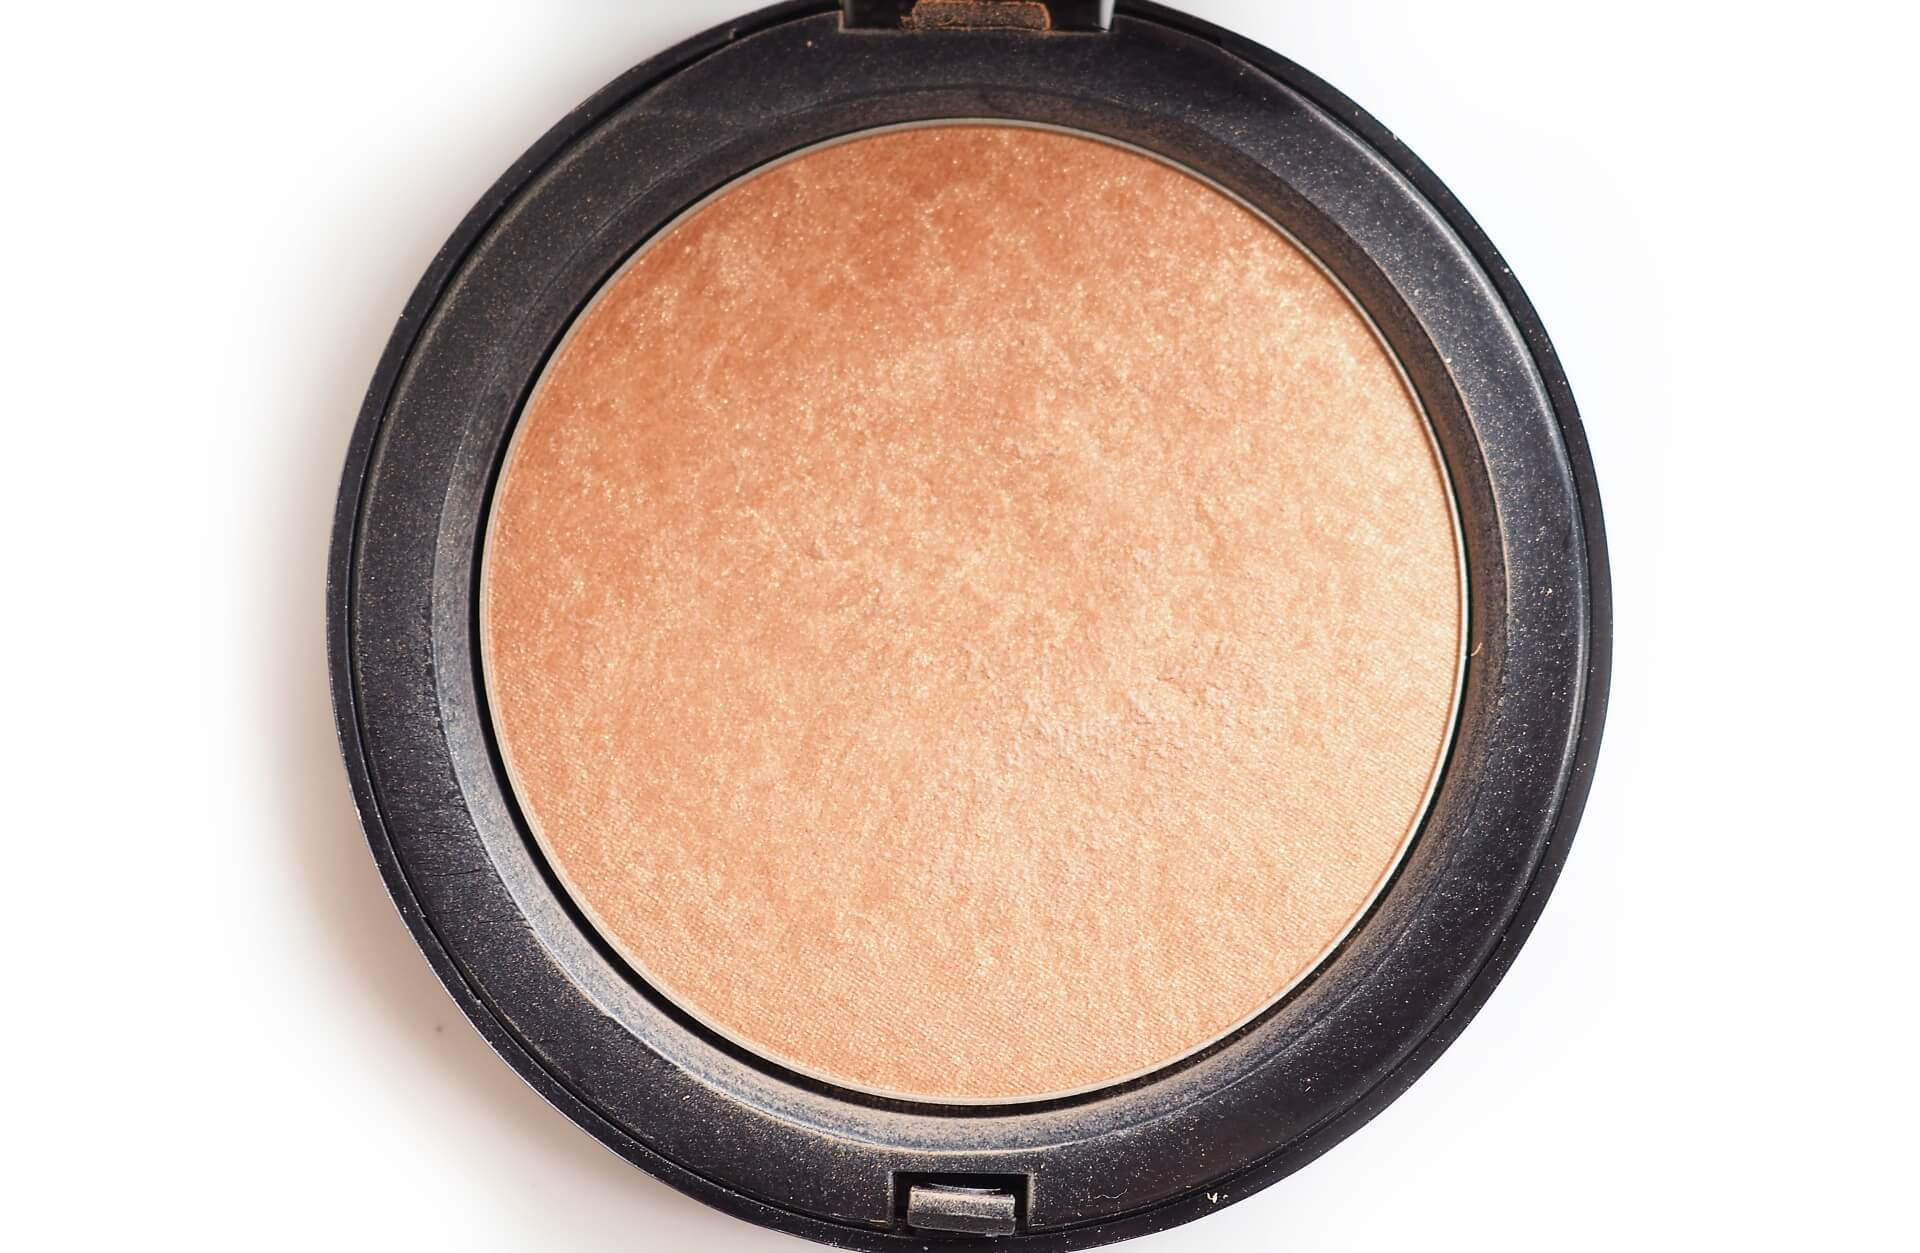 Bobbi Brown Illuminating Bronzer Powder